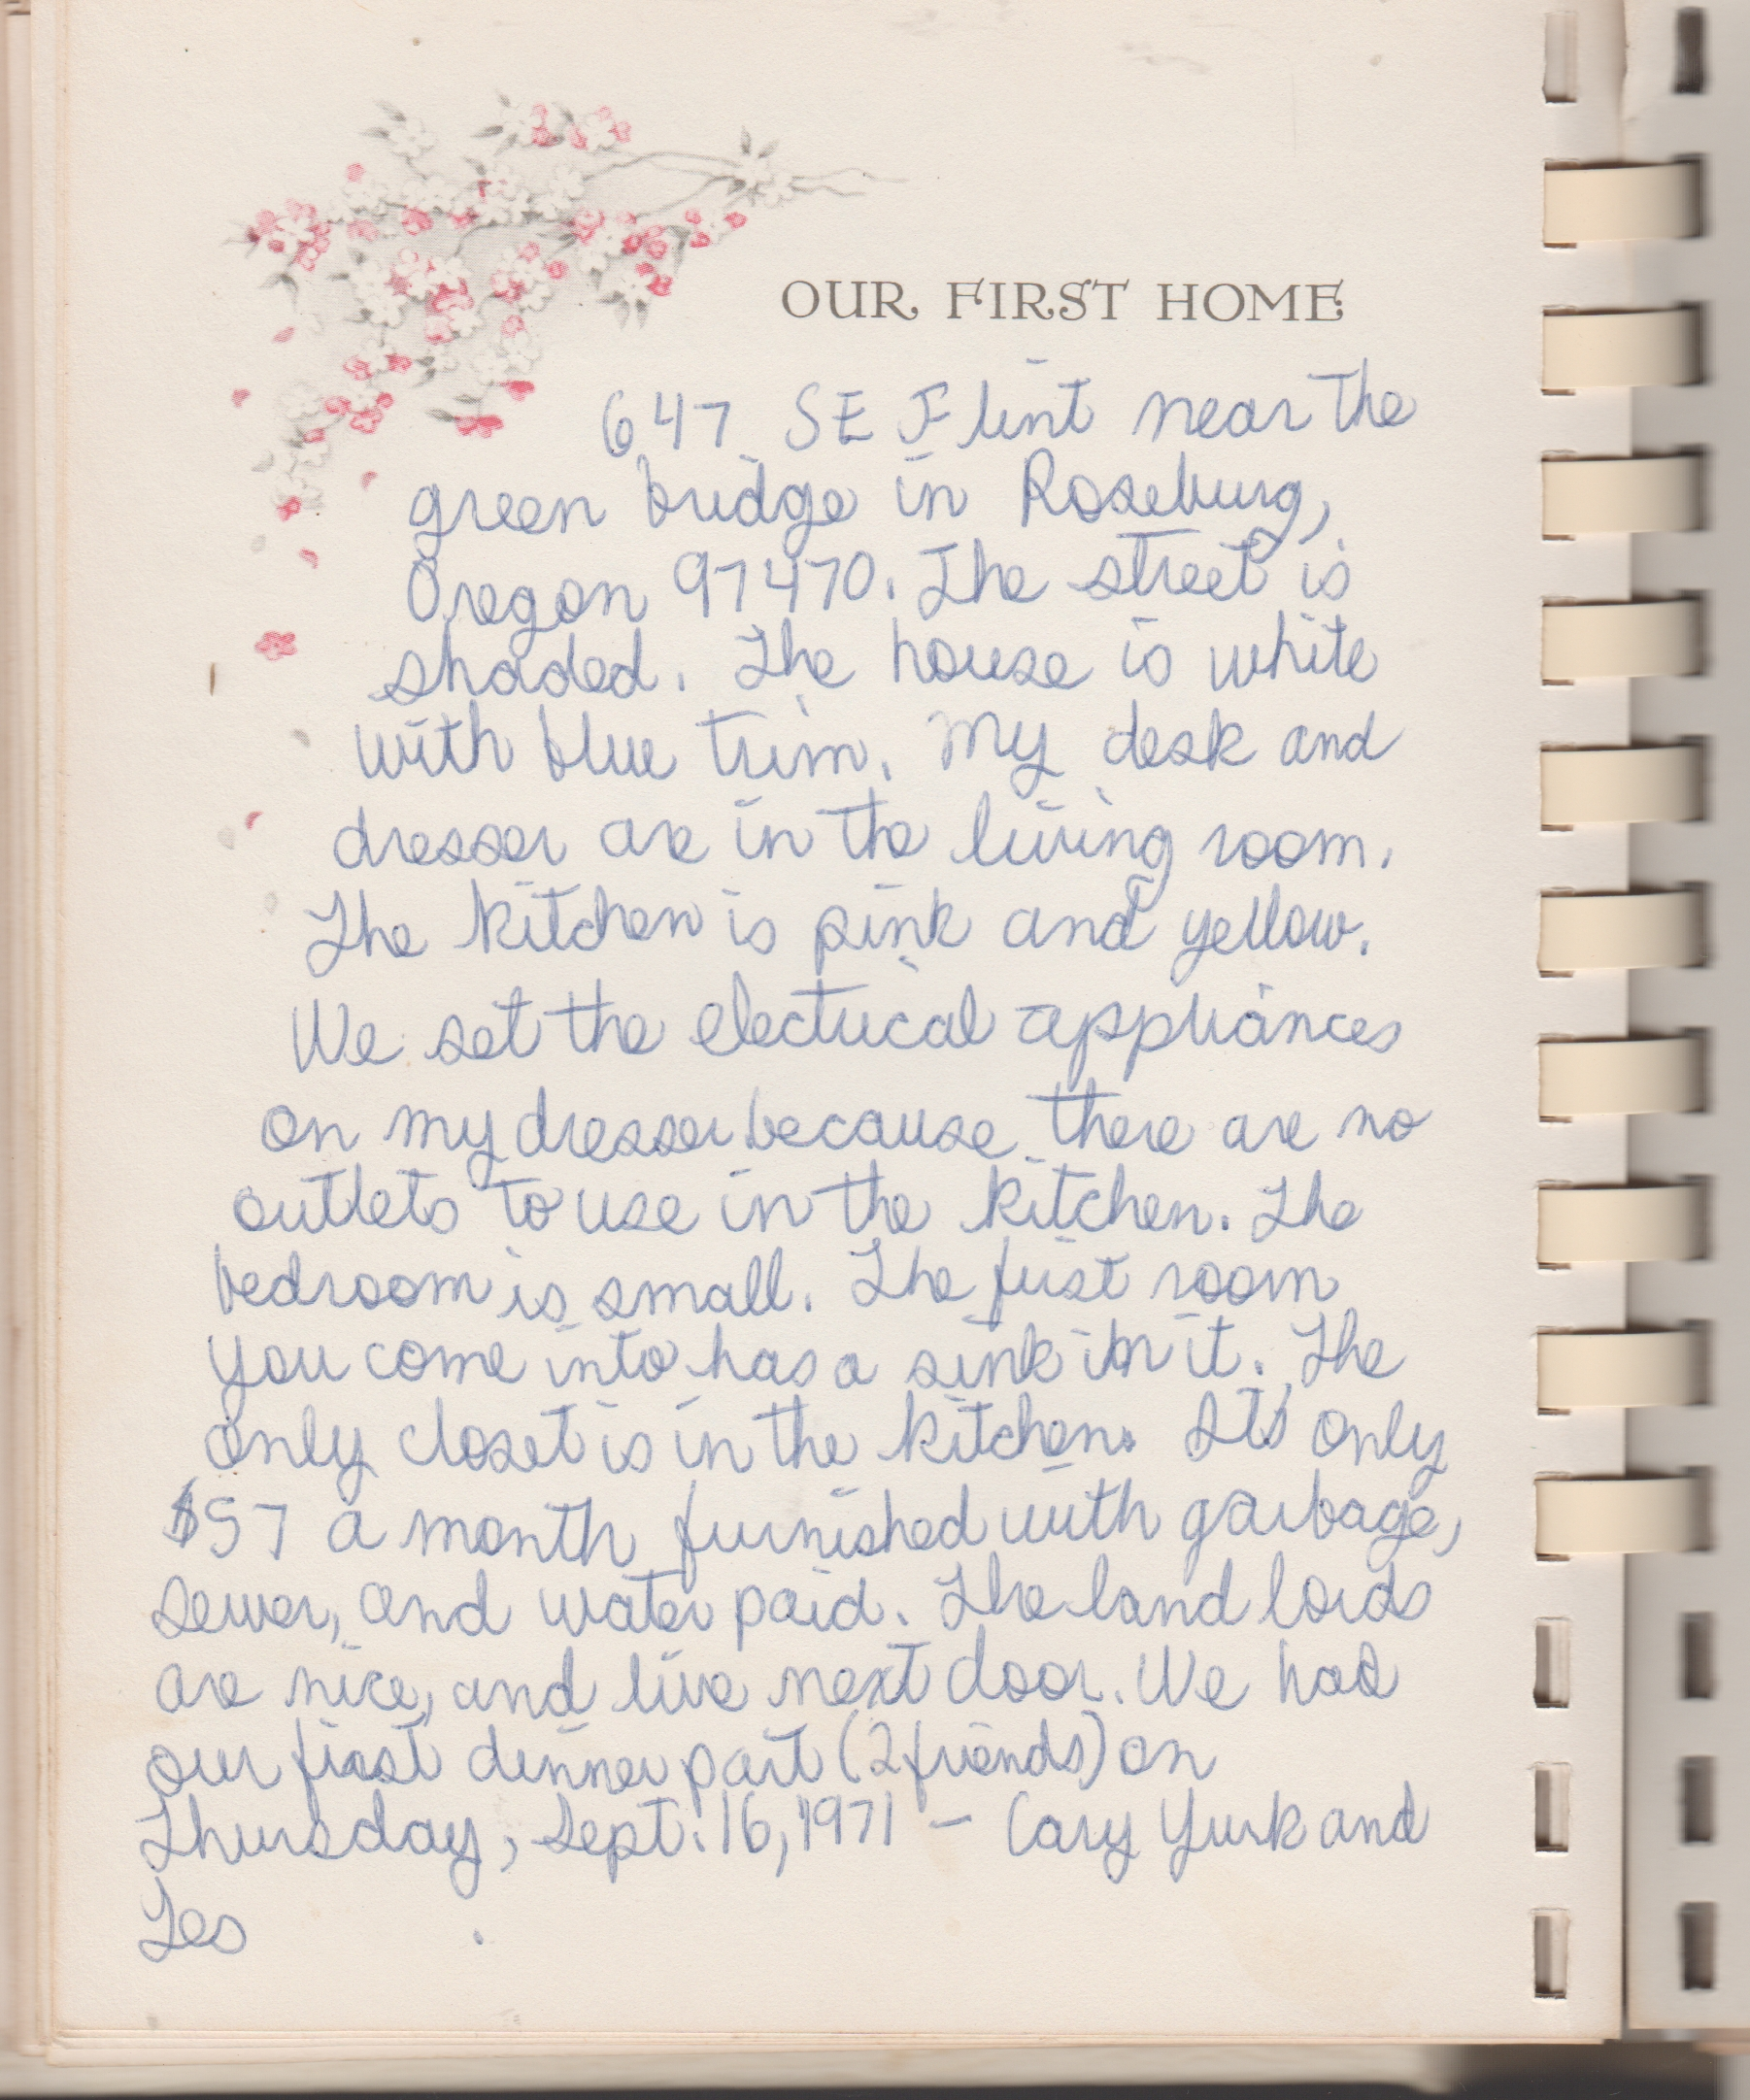 1971-09-04 - Saturday - Wedding Notes-13.jpg